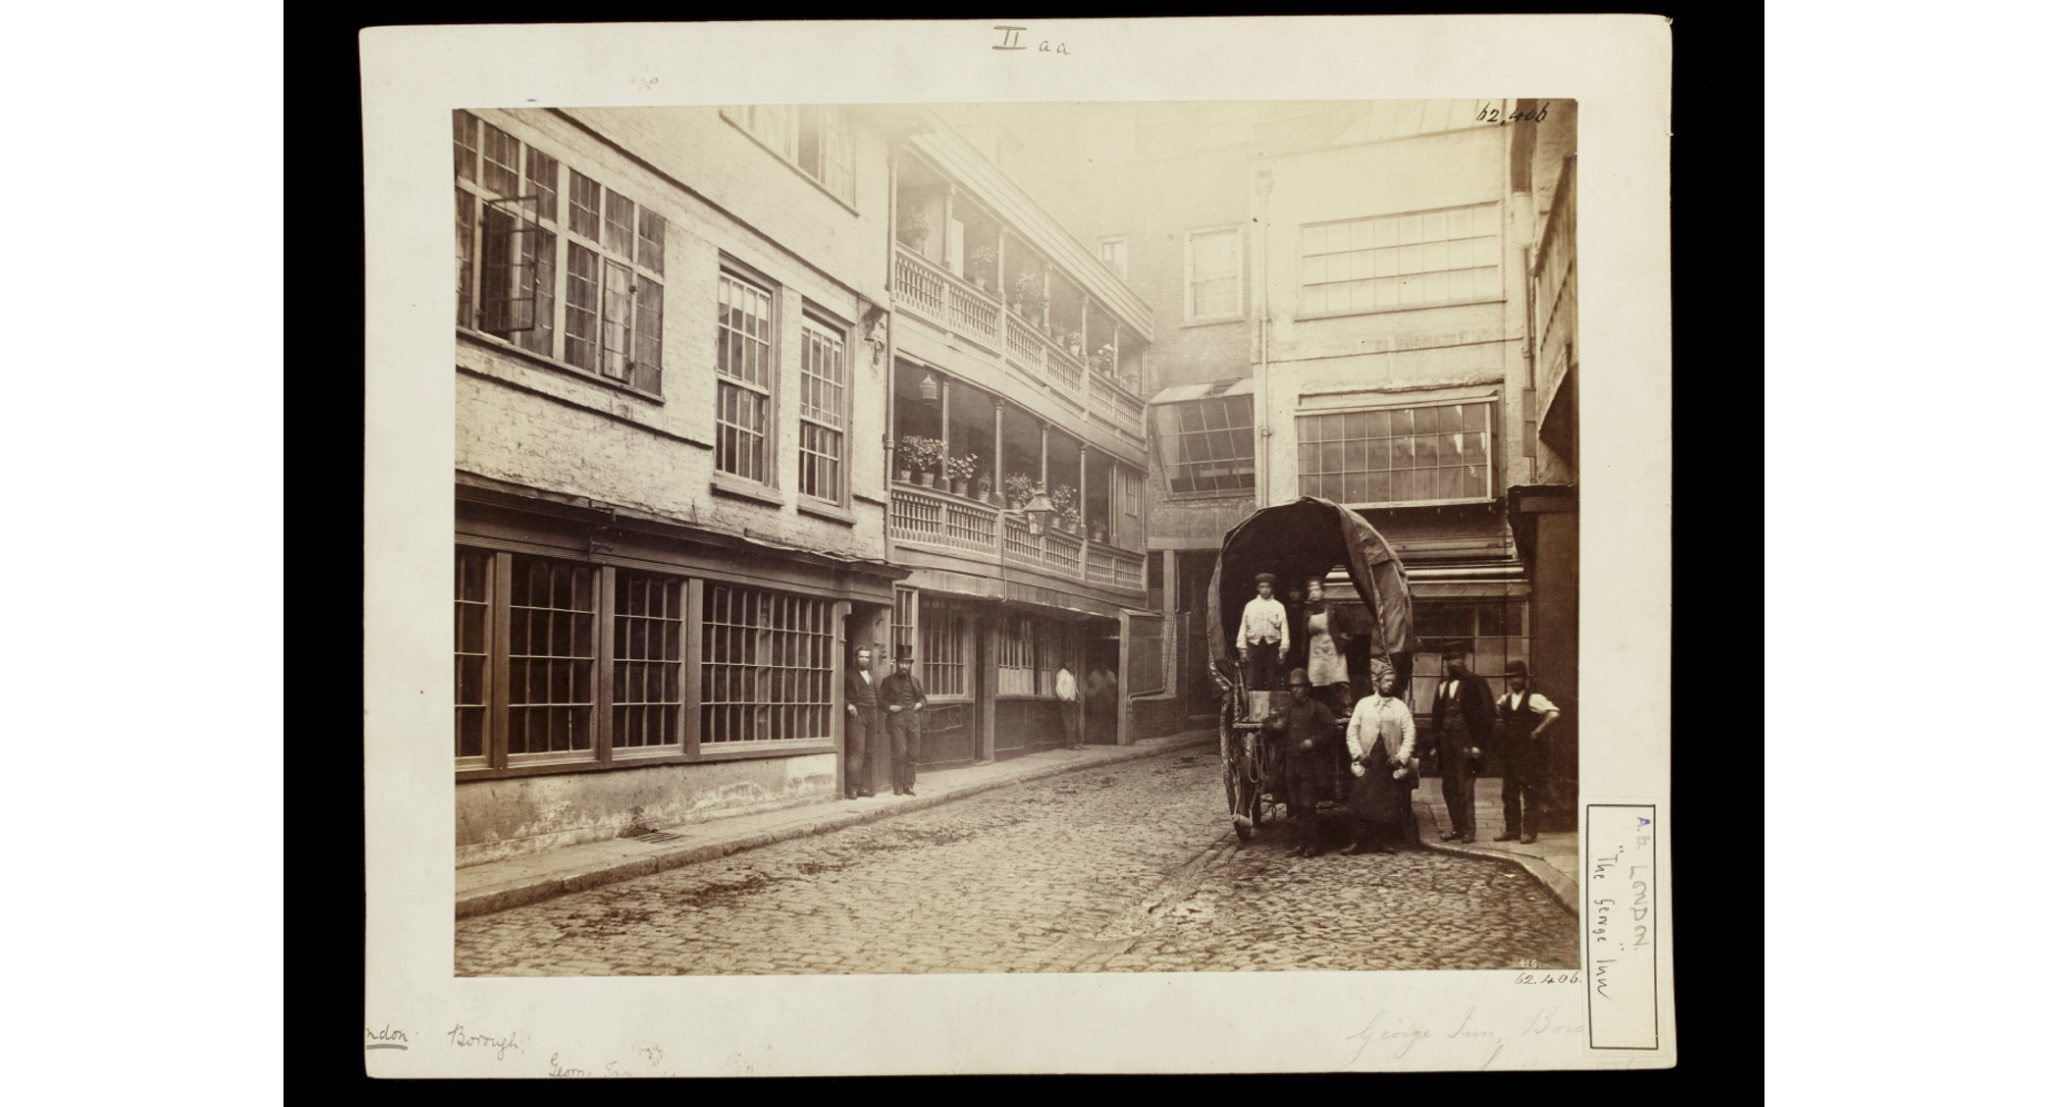 (William Strudwick, The George Inn, Borough, London, about 1865. © V&A)